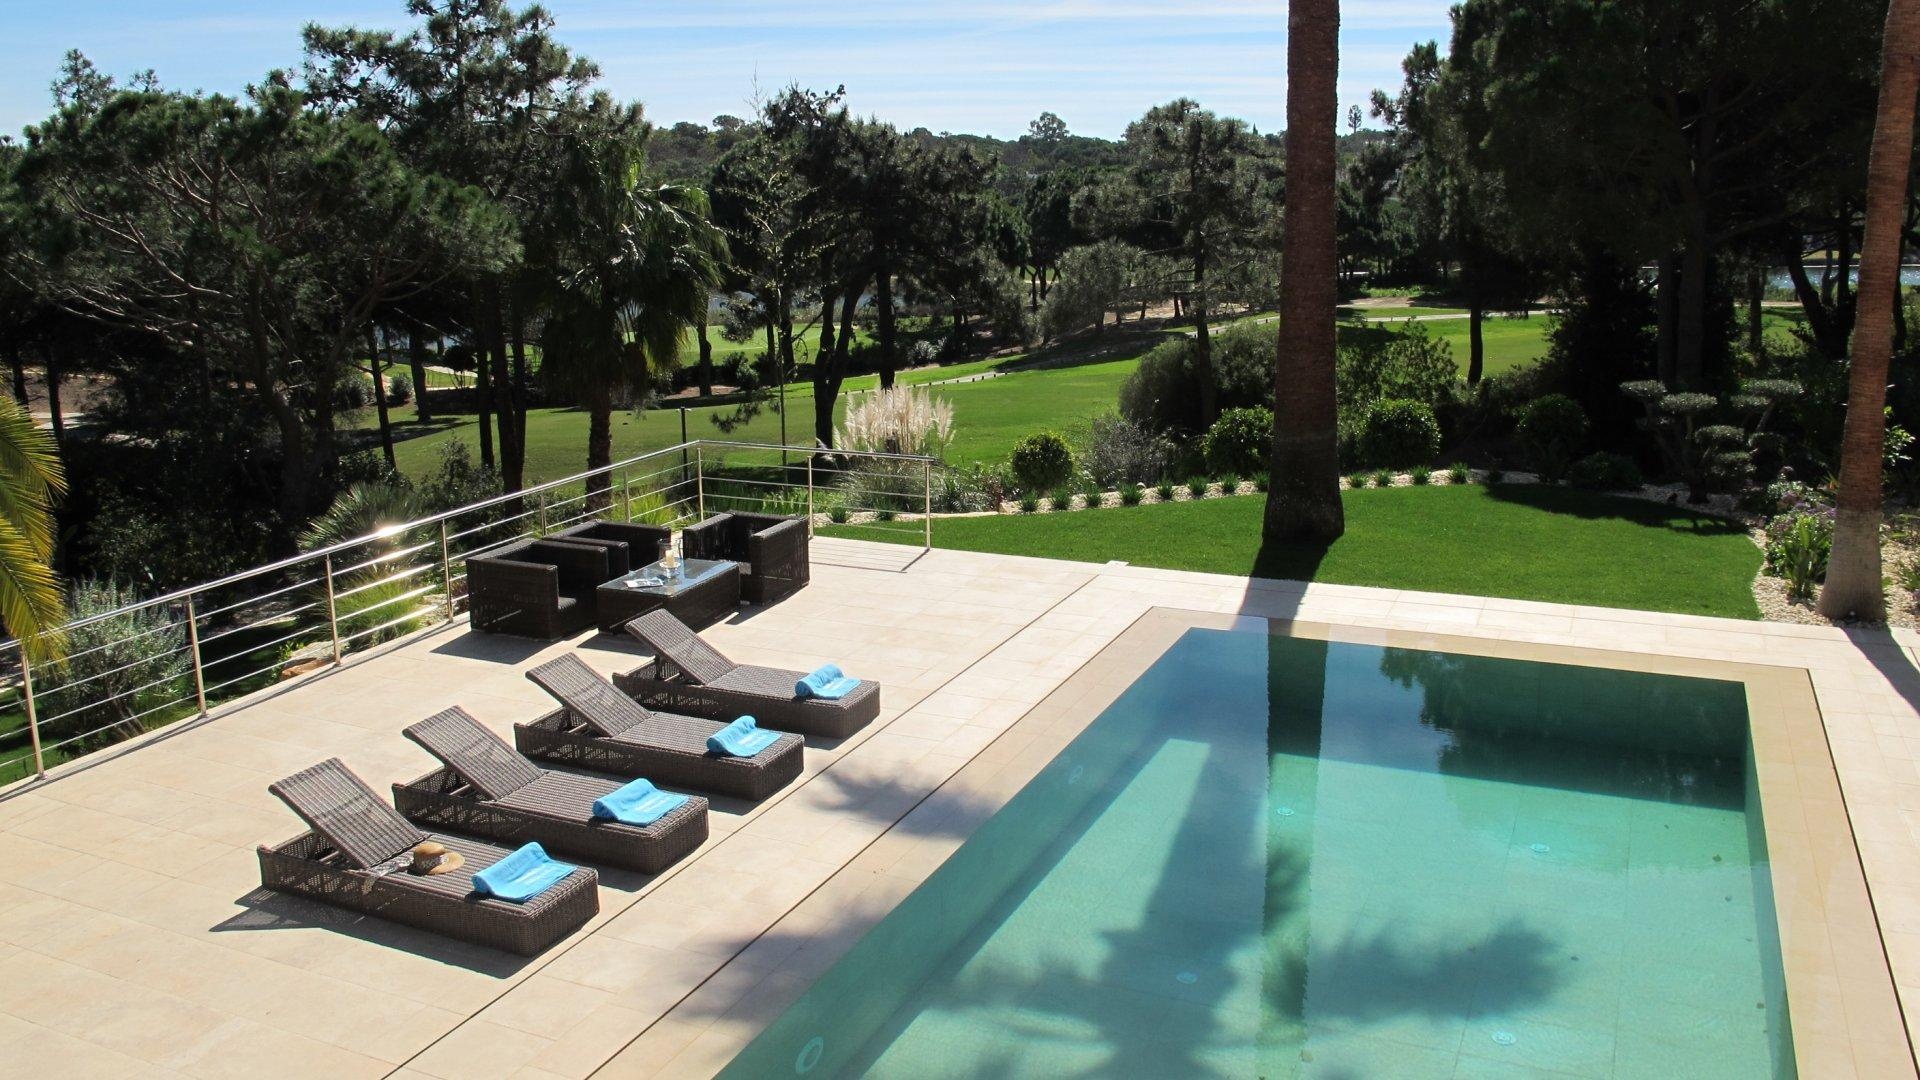 Villa Athena - Lakeside Village, Quinta do Lago, Algarve - Athena1.jpg